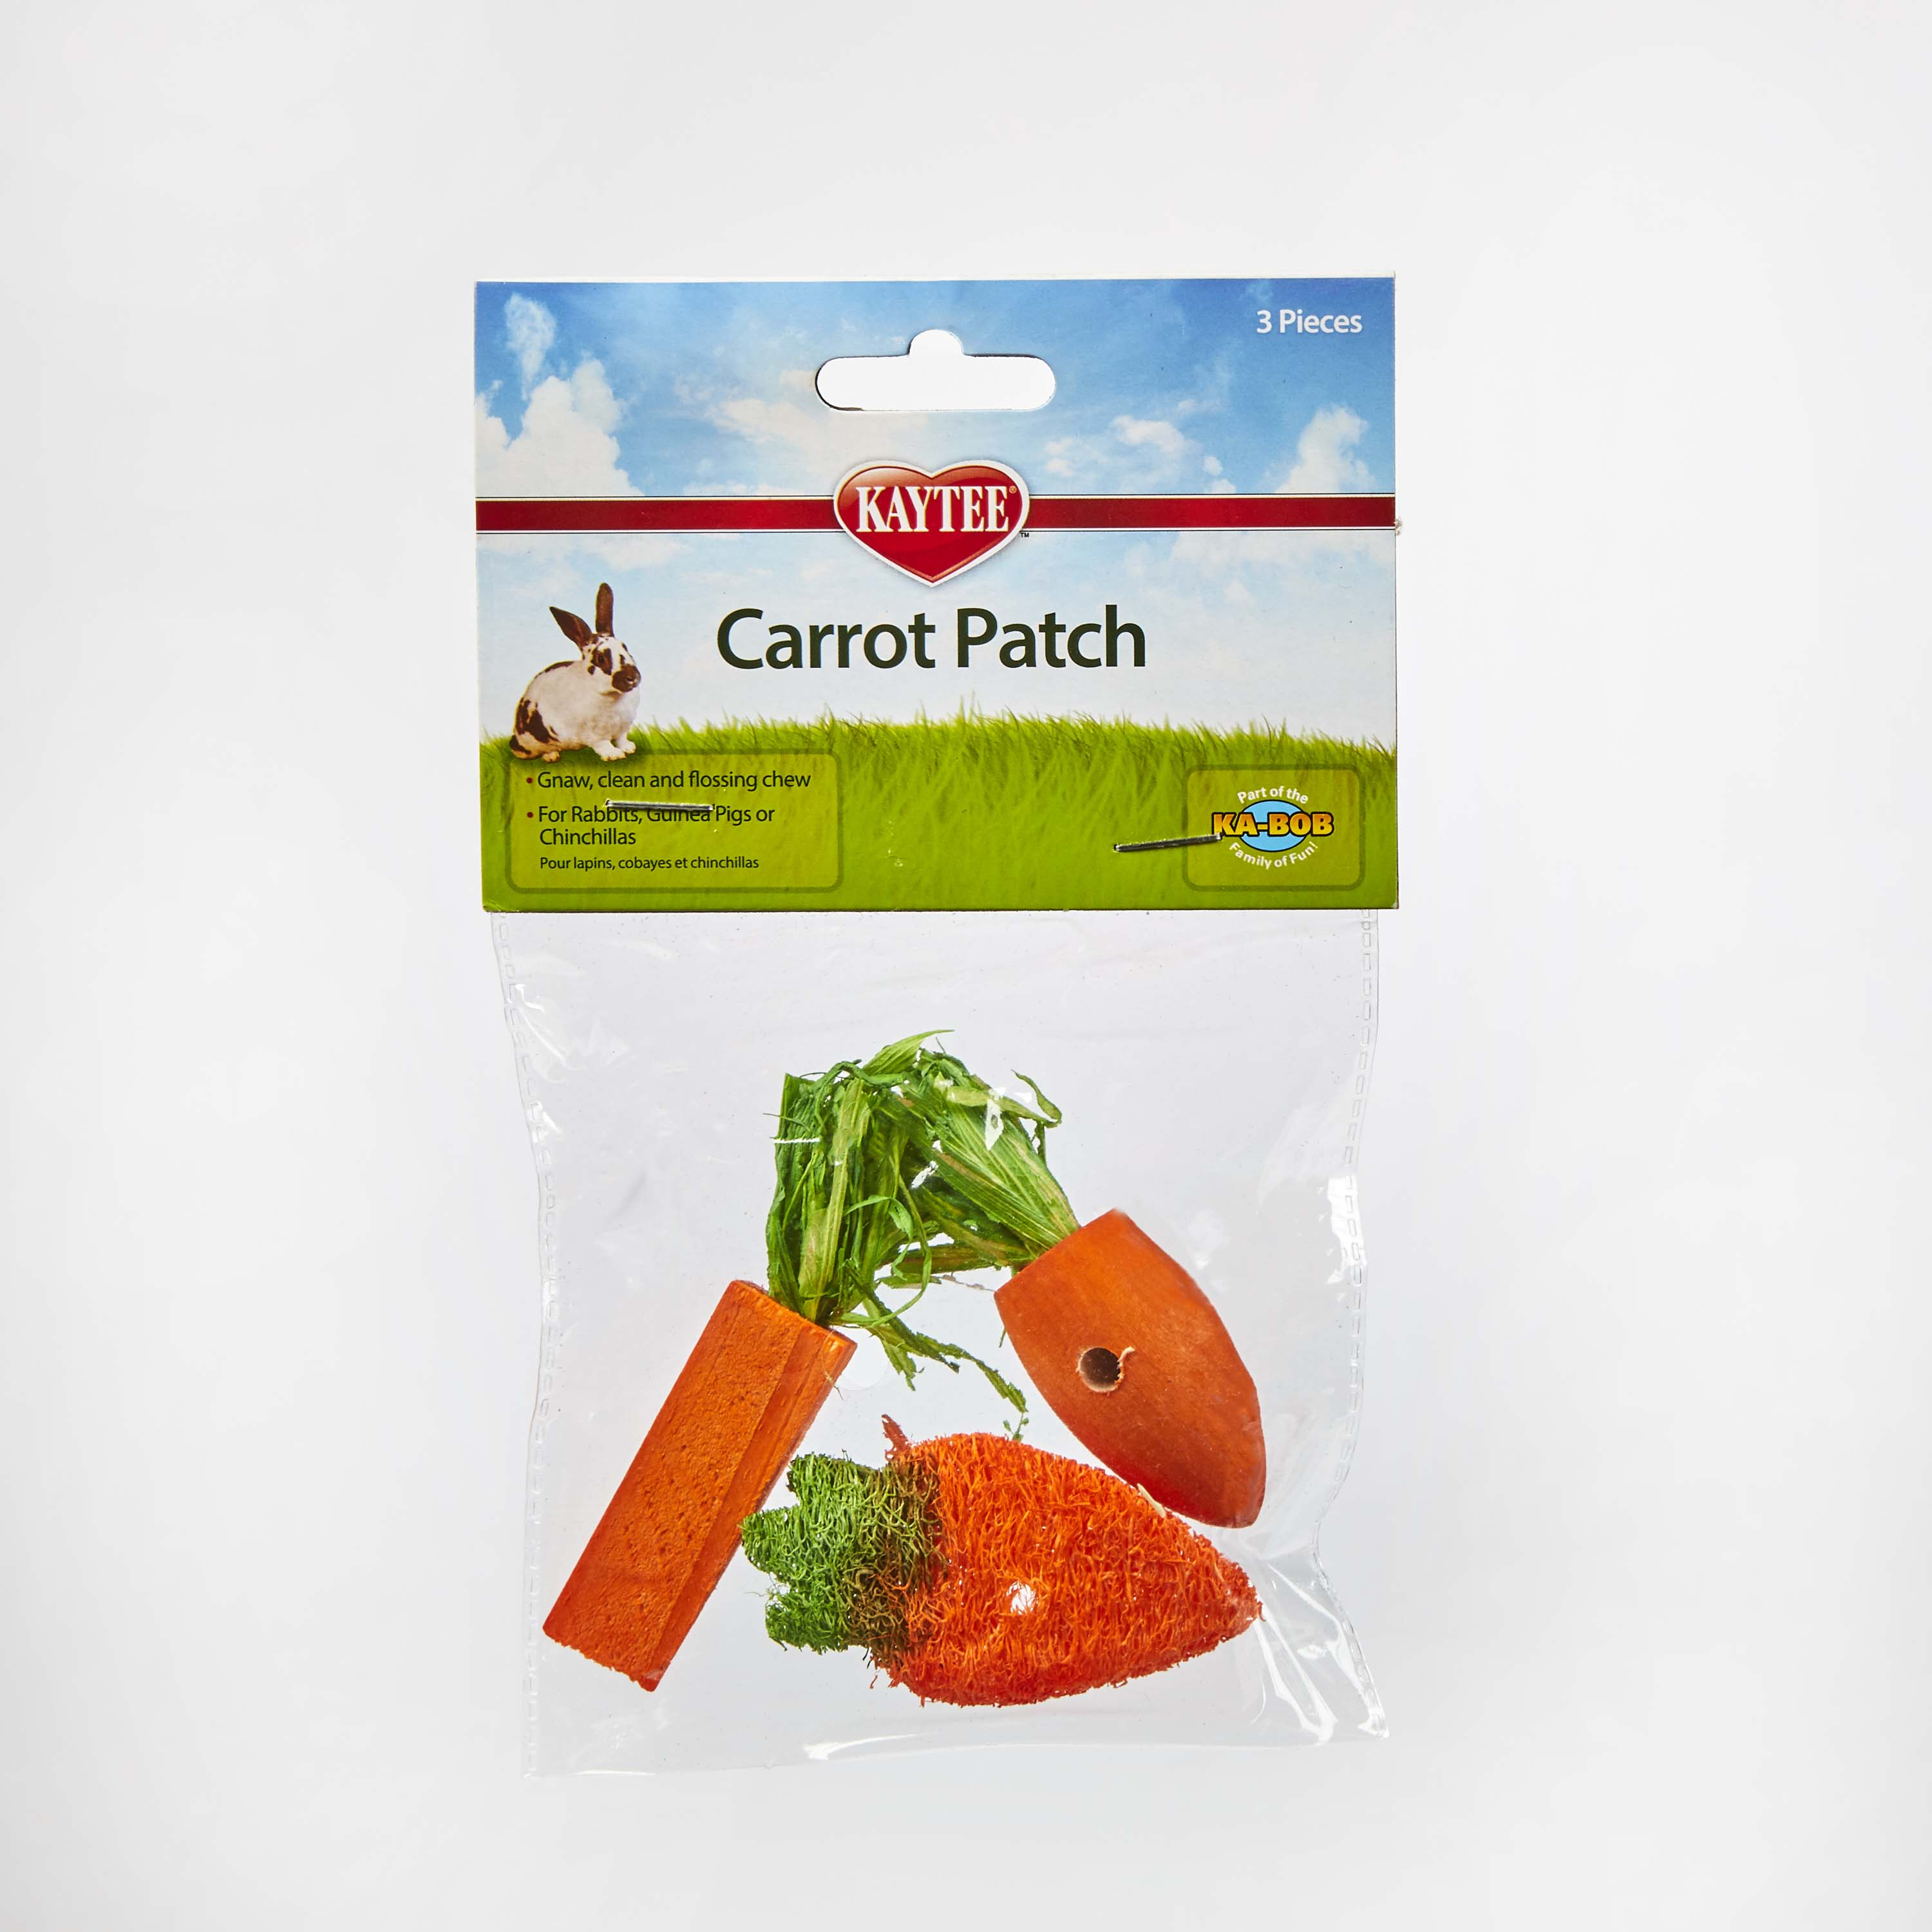 Kaytee Carrot Patch Variety Small Animal Chew Toy, 3-pk